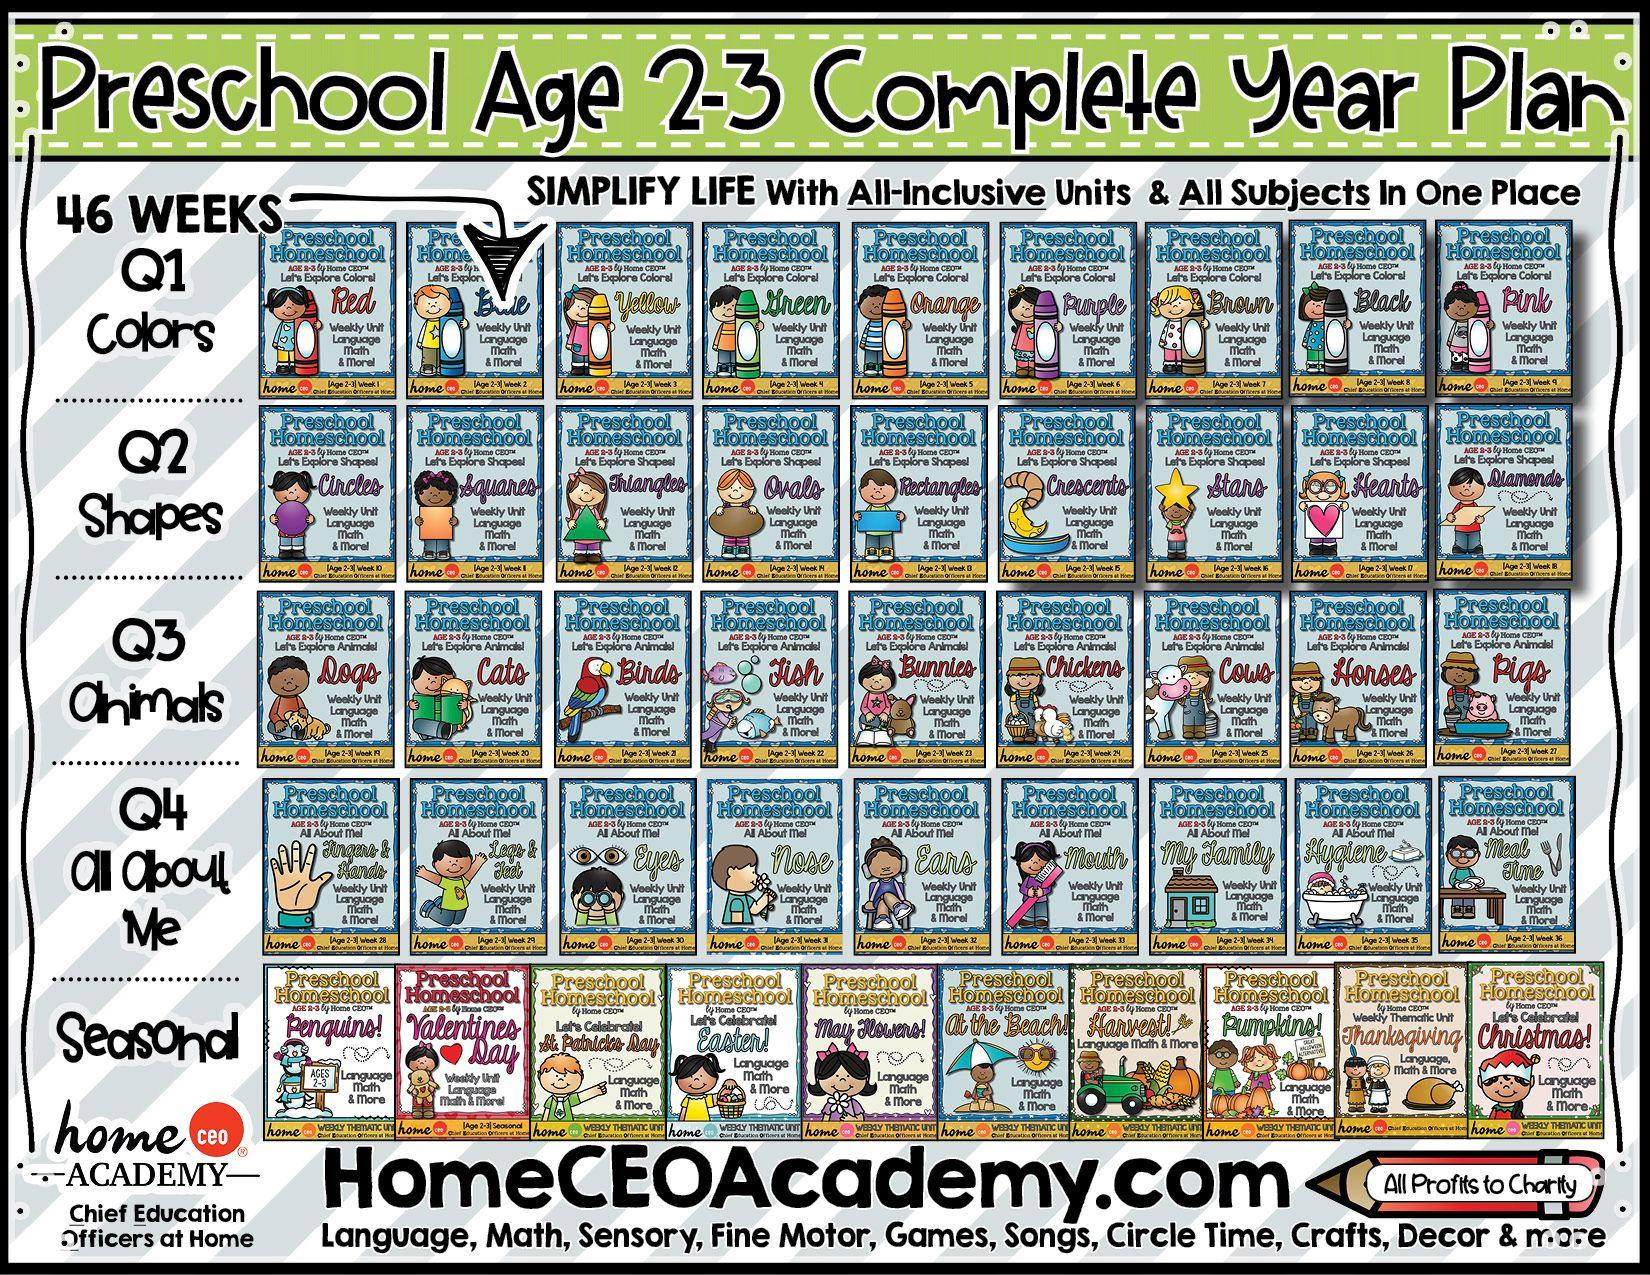 Free Preschool Worksheets Age 2-3